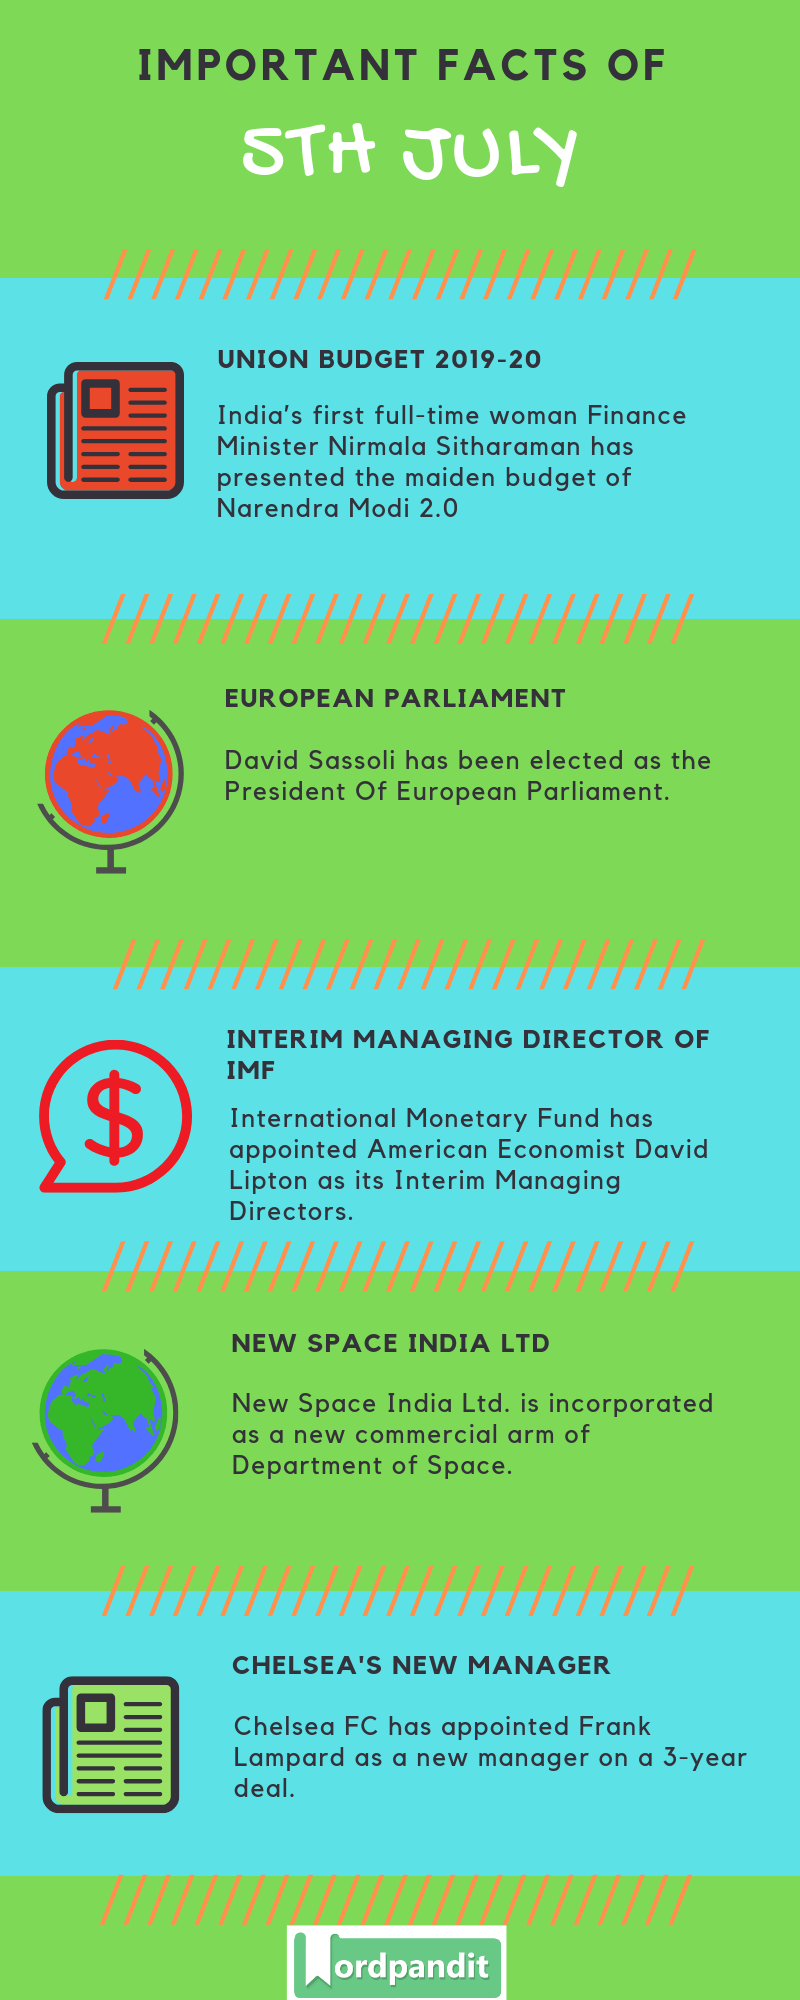 Daily Current Affairs 5 July 2019 Current Affairs Quiz 5 July 2019 Current Affairs Infographic